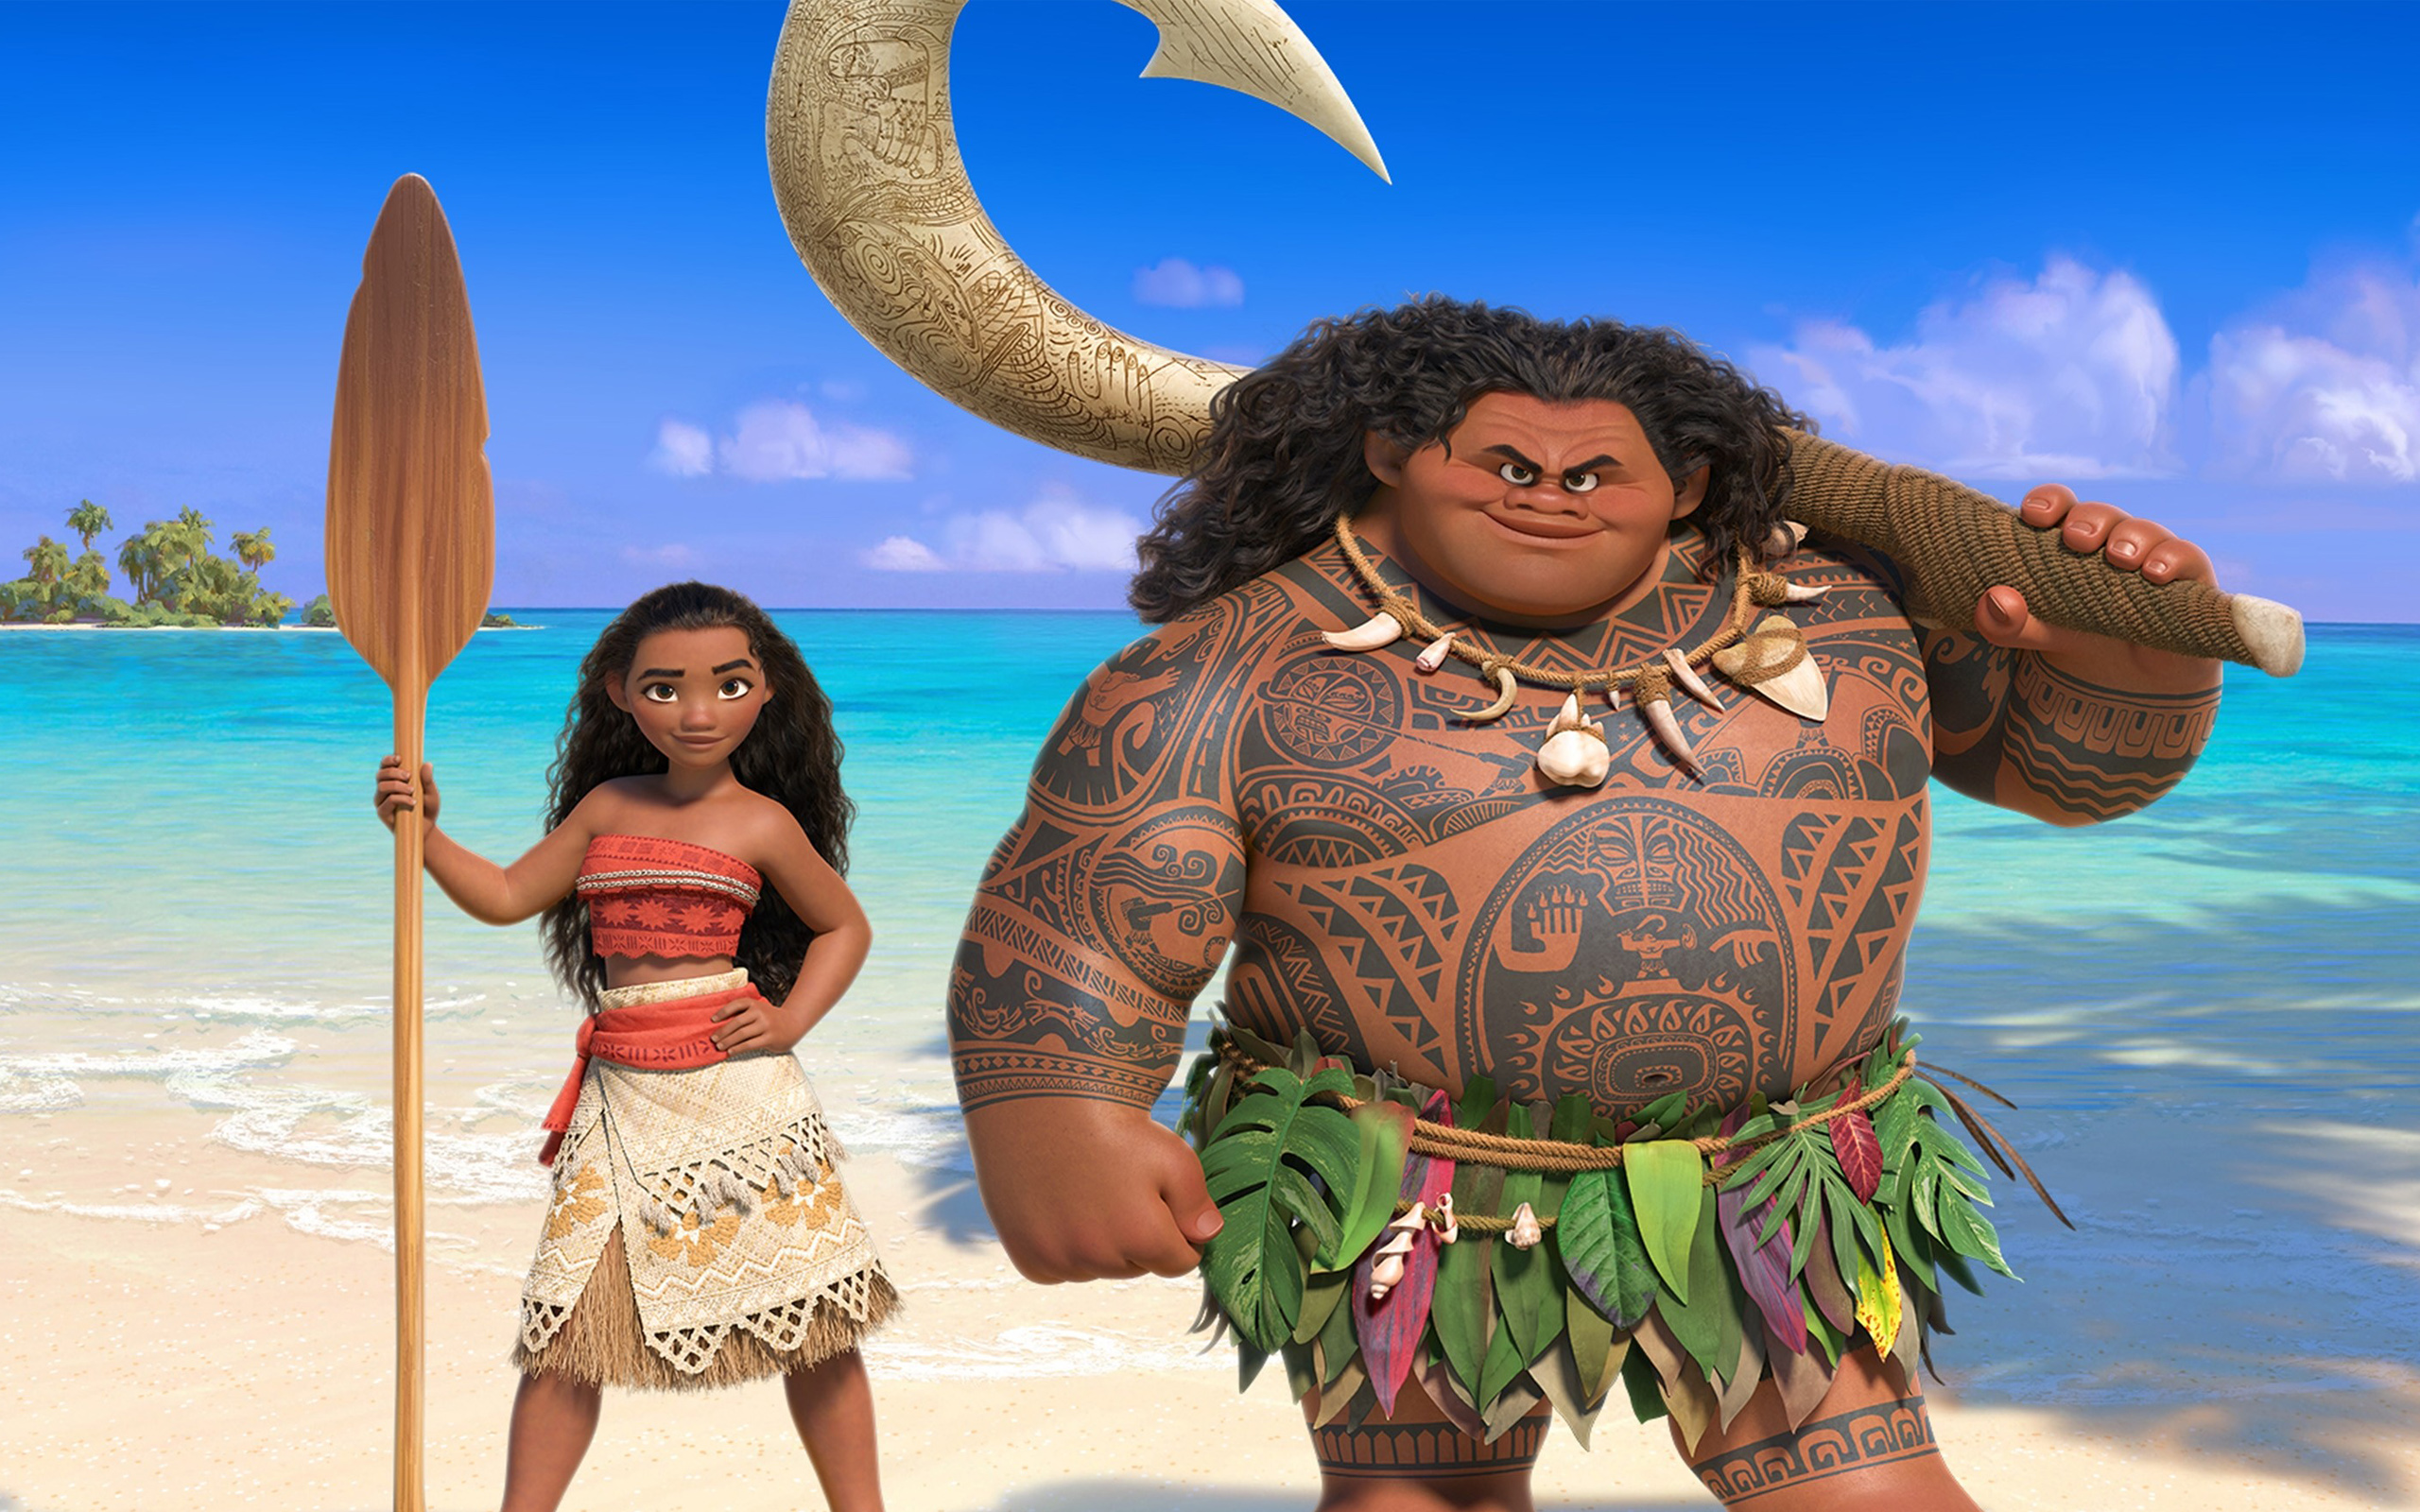 https://wallbox.ru/wallpapers/main2/201645/moana-moana-maui-maui12.jpg